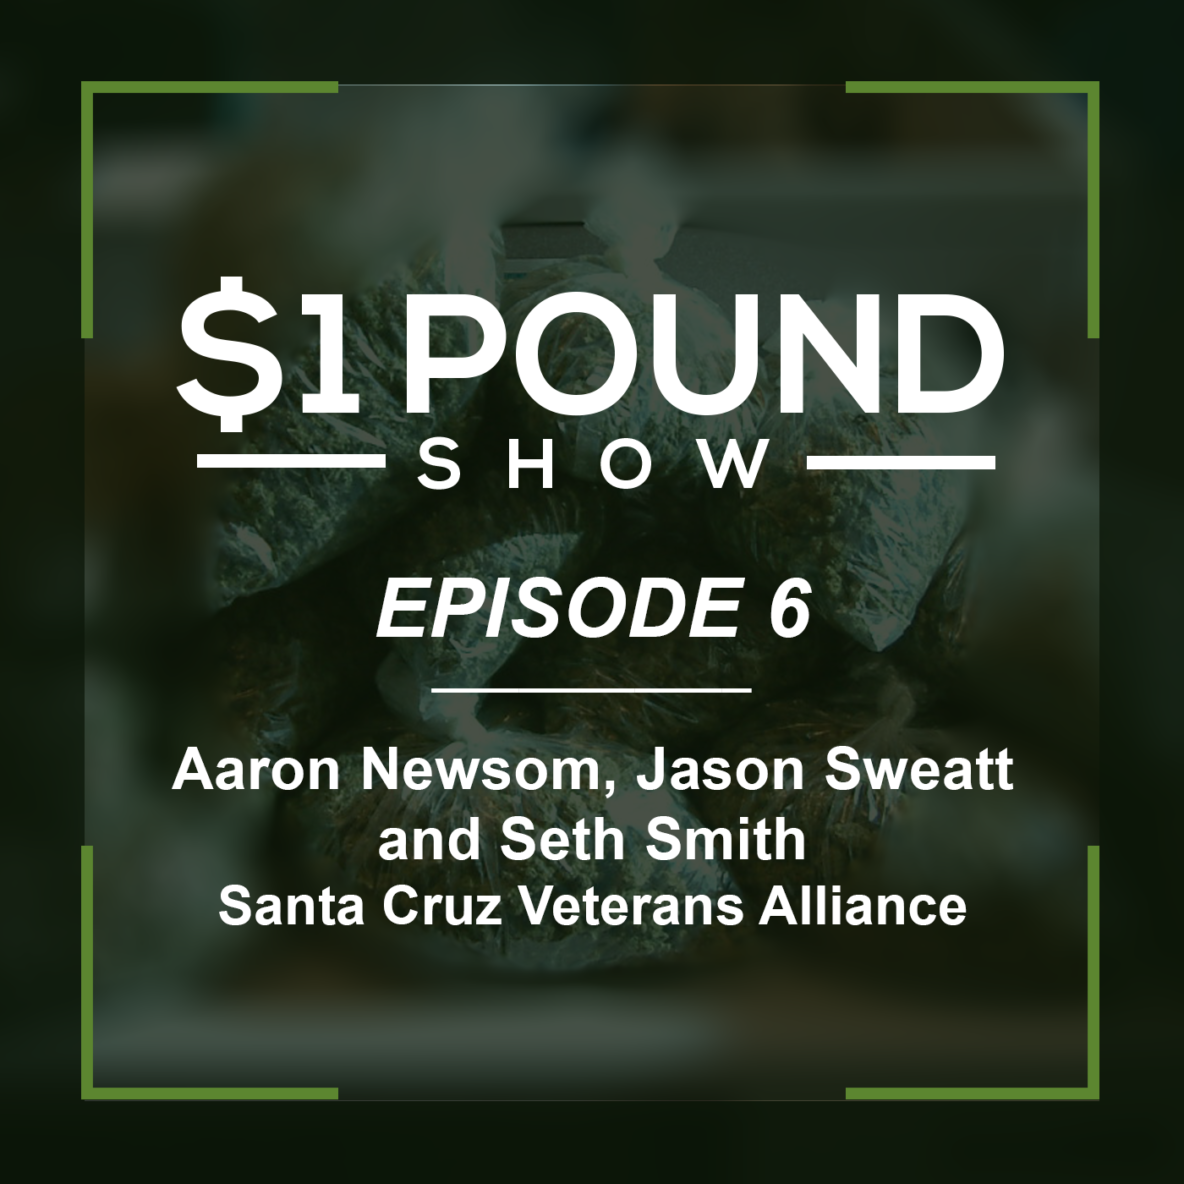 1 Pound Show episode 6